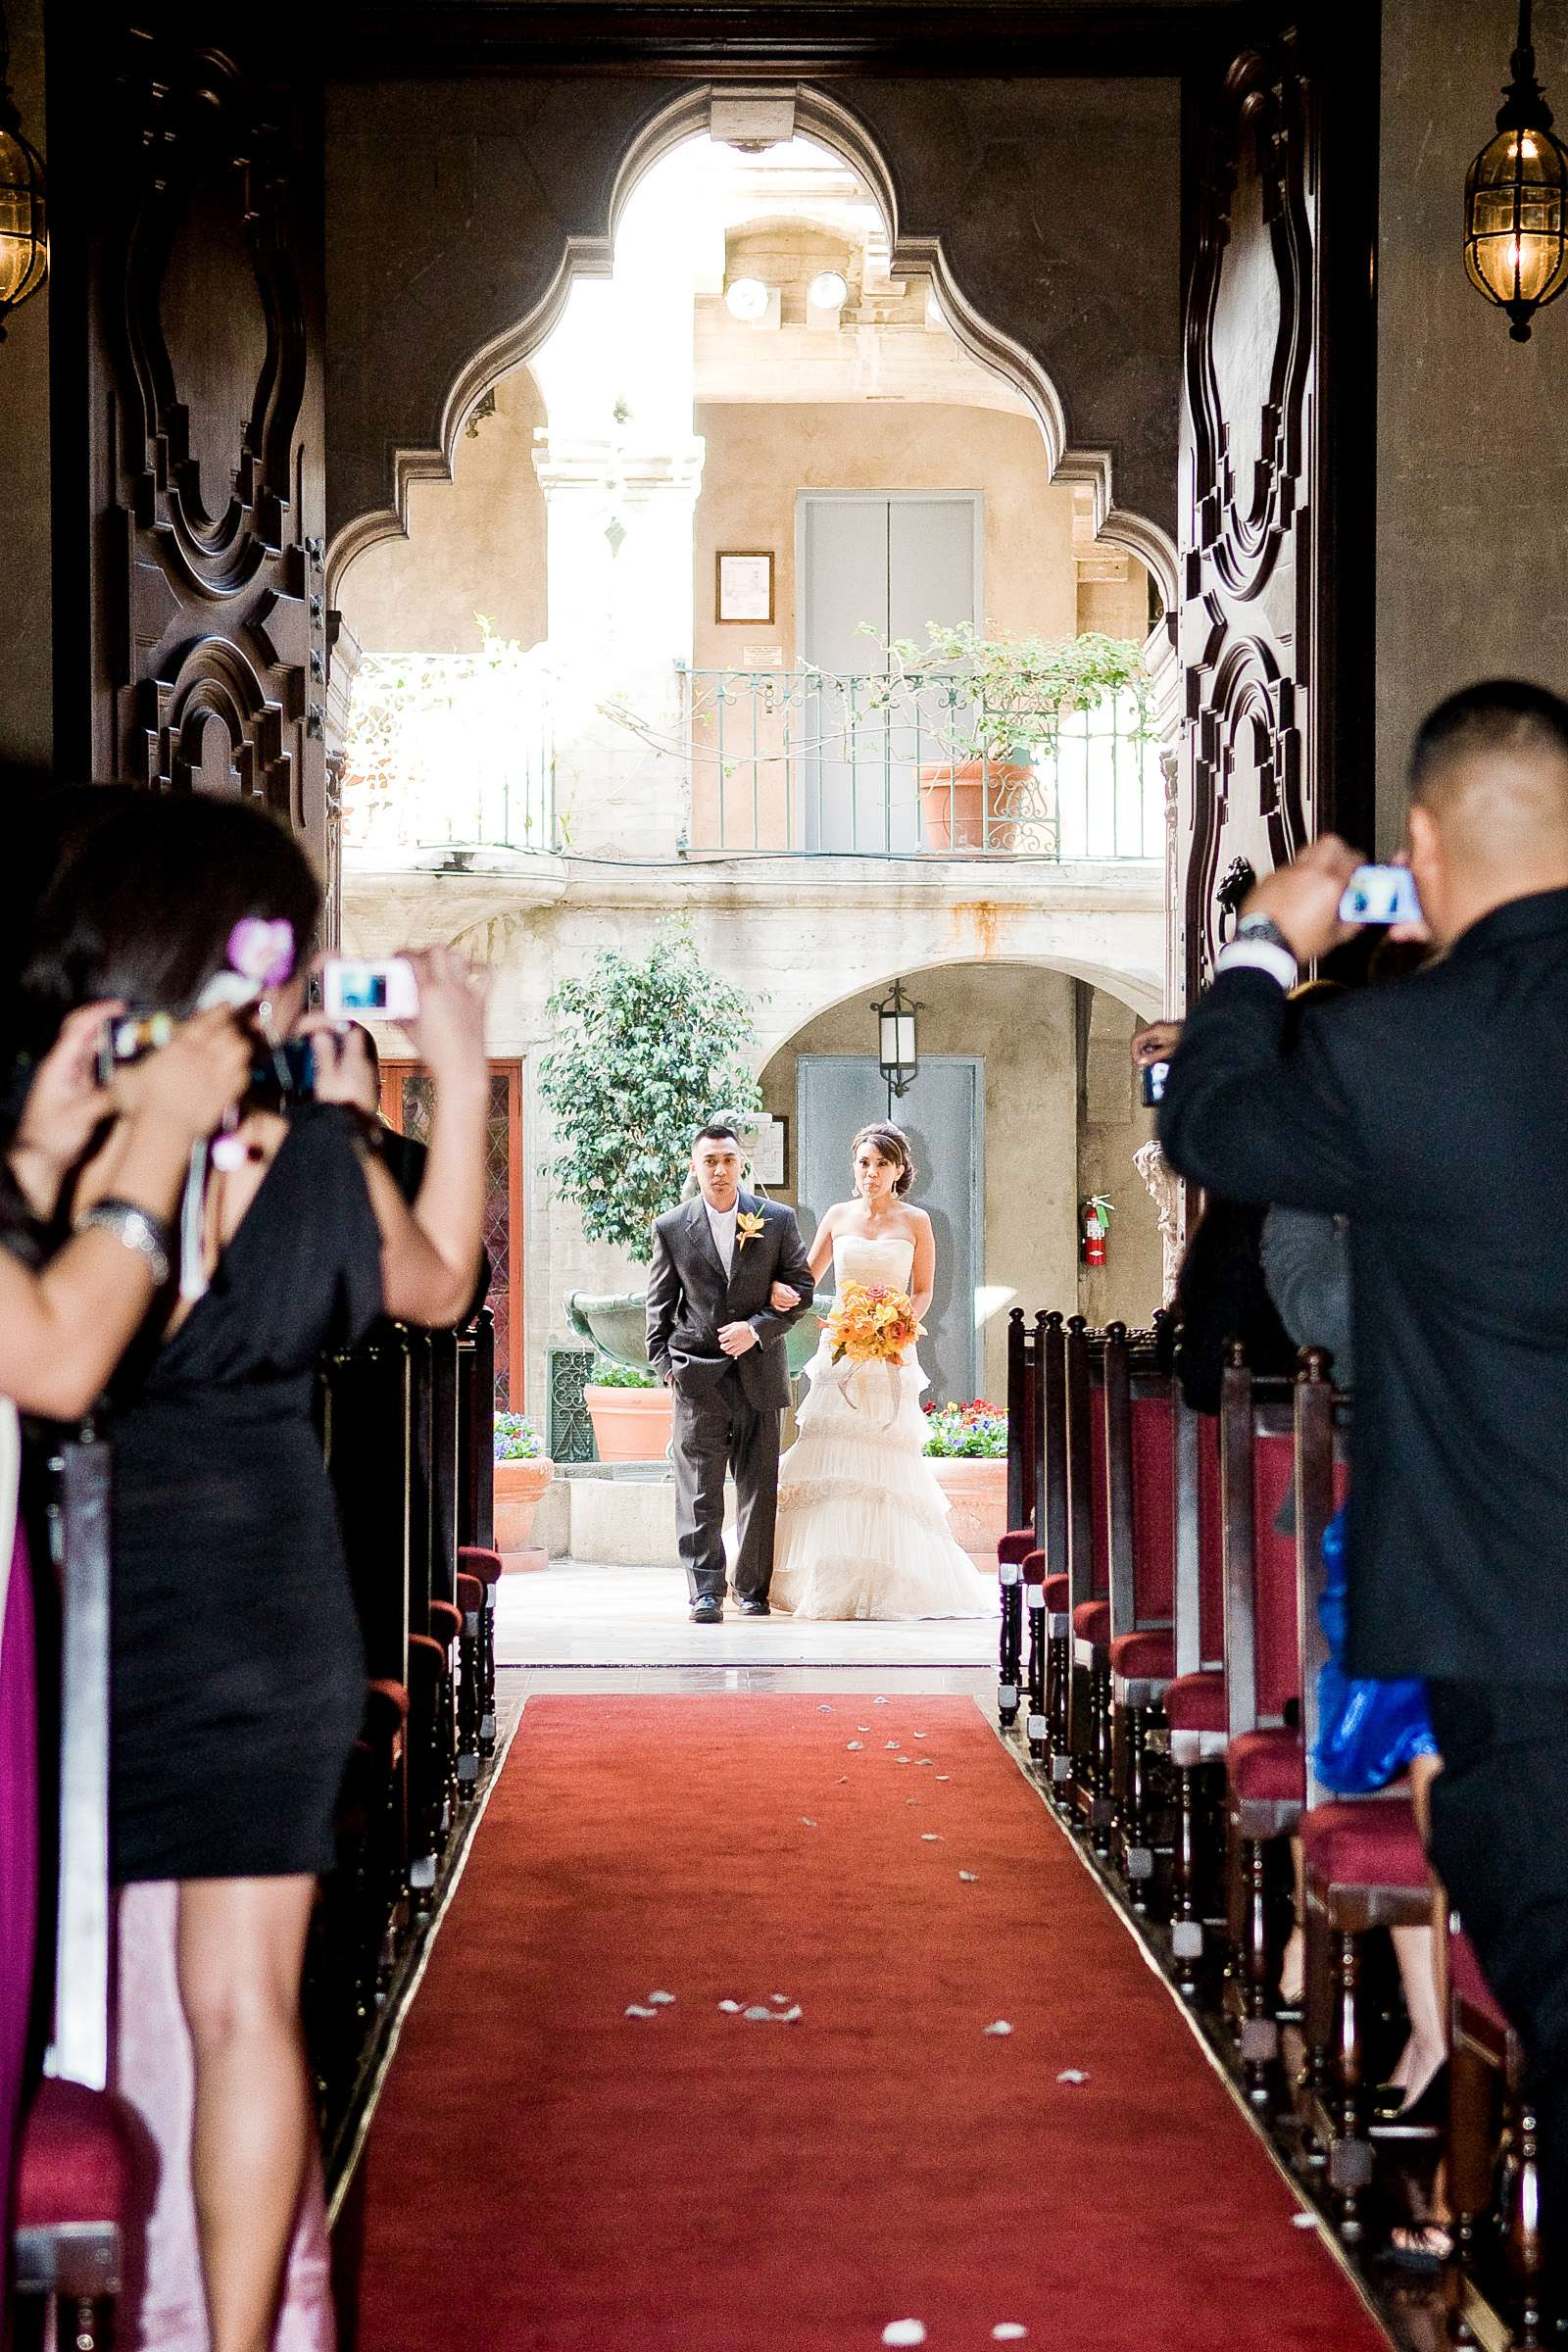 The Mission Inn-Riverside Wedding, Theresa and Francis Wedding Photo #301544 by True Photography